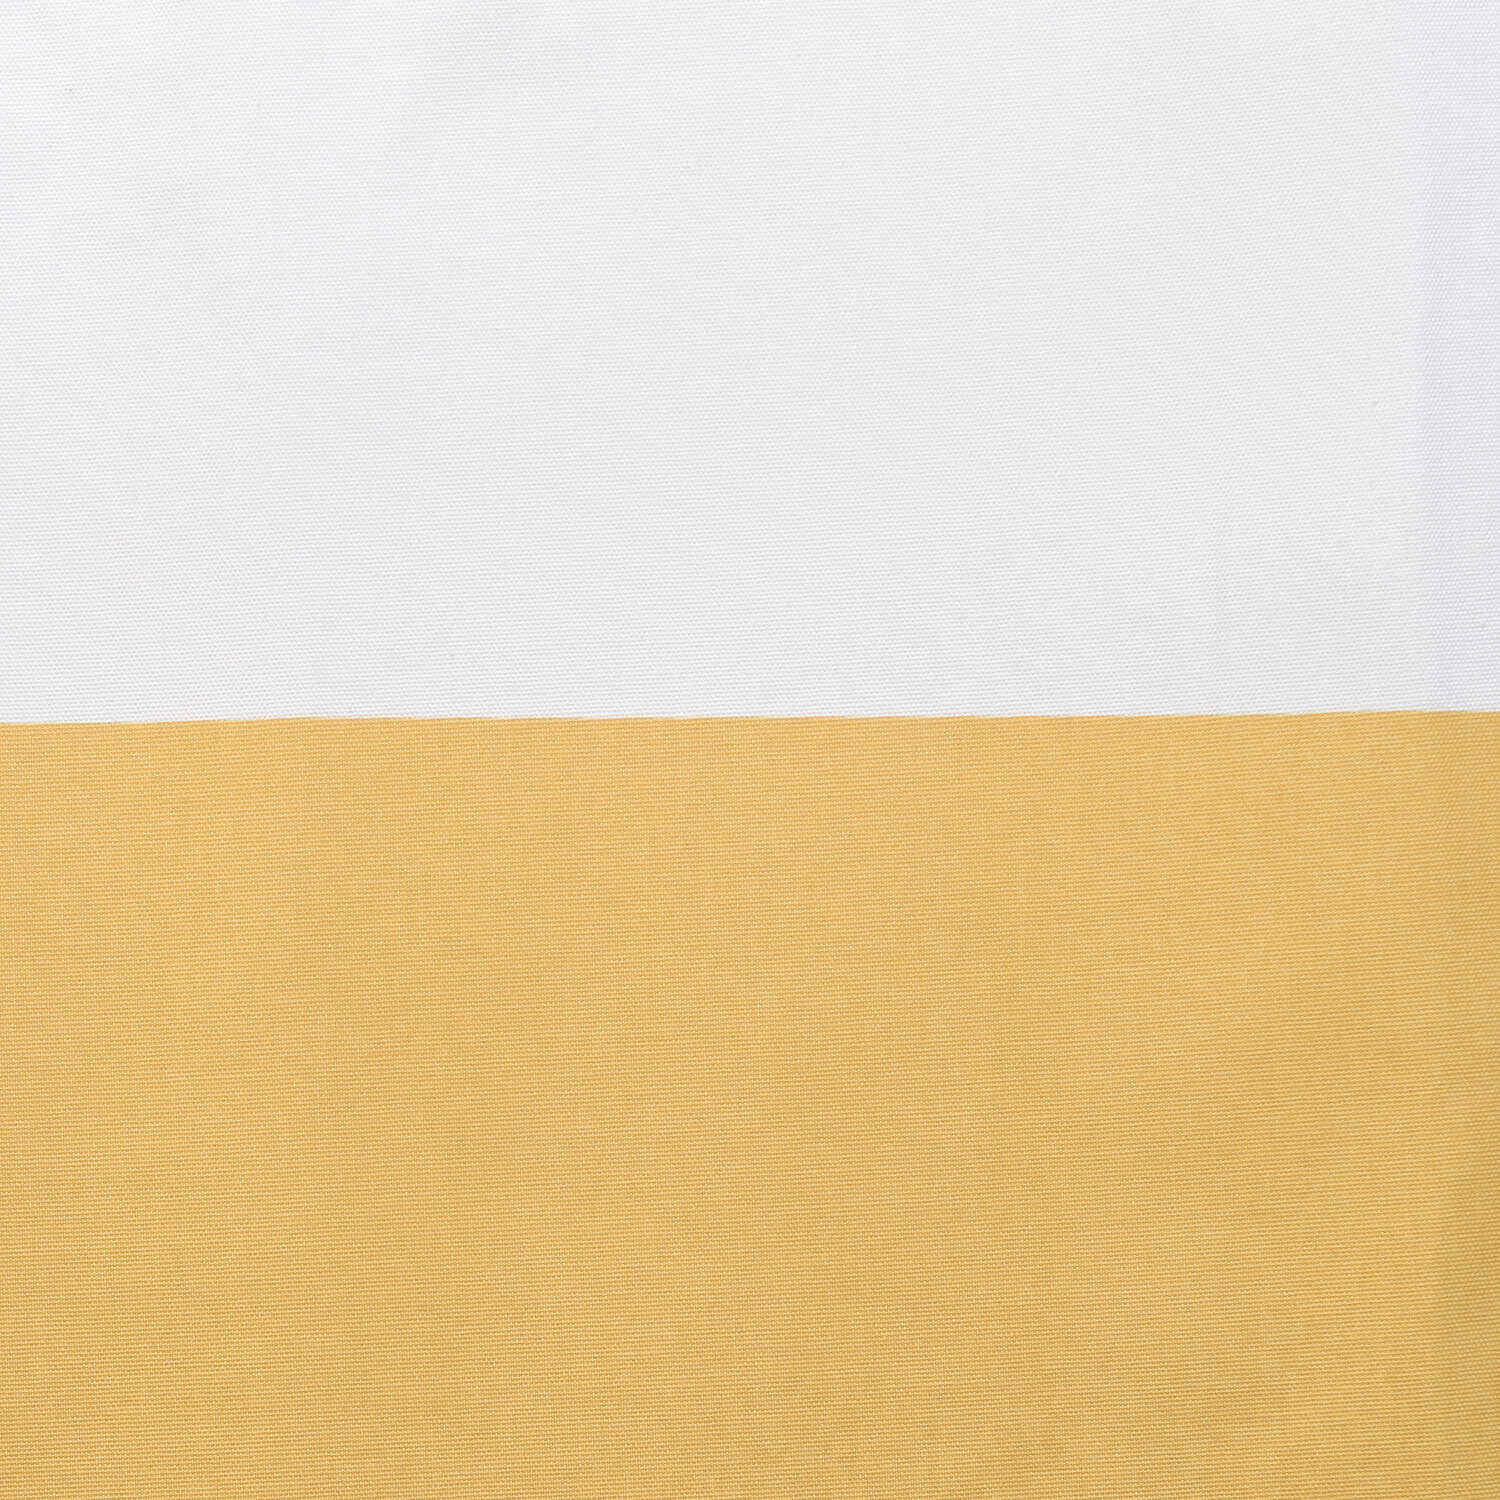 Quince Yellow & OffWhite Horizontal Stripe Cotton Fabric